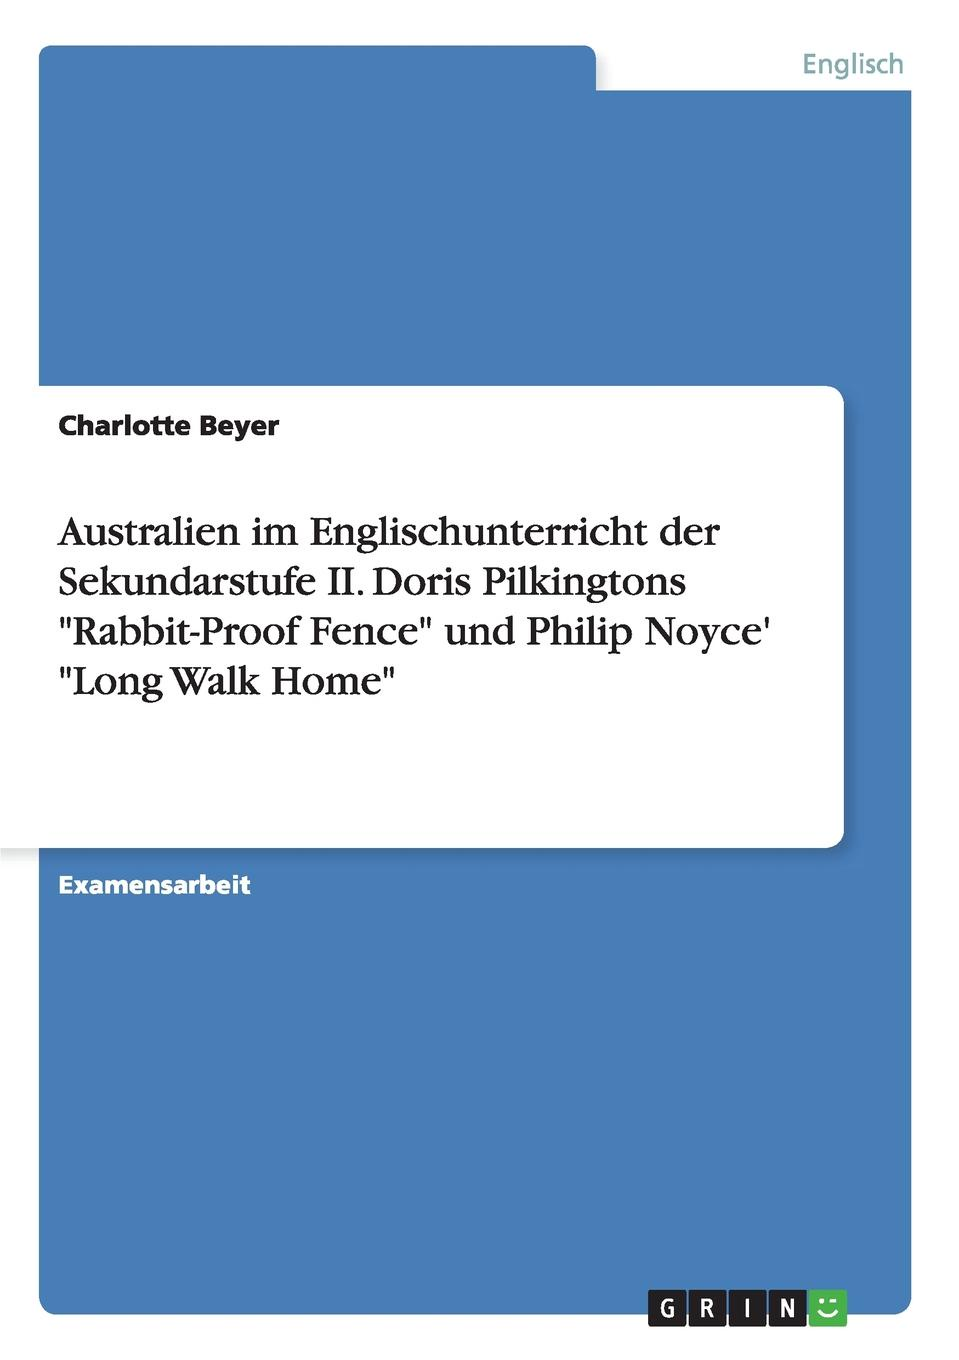 "Charlotte Beyer Australien im Englischunterricht der Sekundarstufe II. Doris Pilkingtons ""Rabbit-Proof Fence"" und Philip Noyce. ""Long Walk Home"""